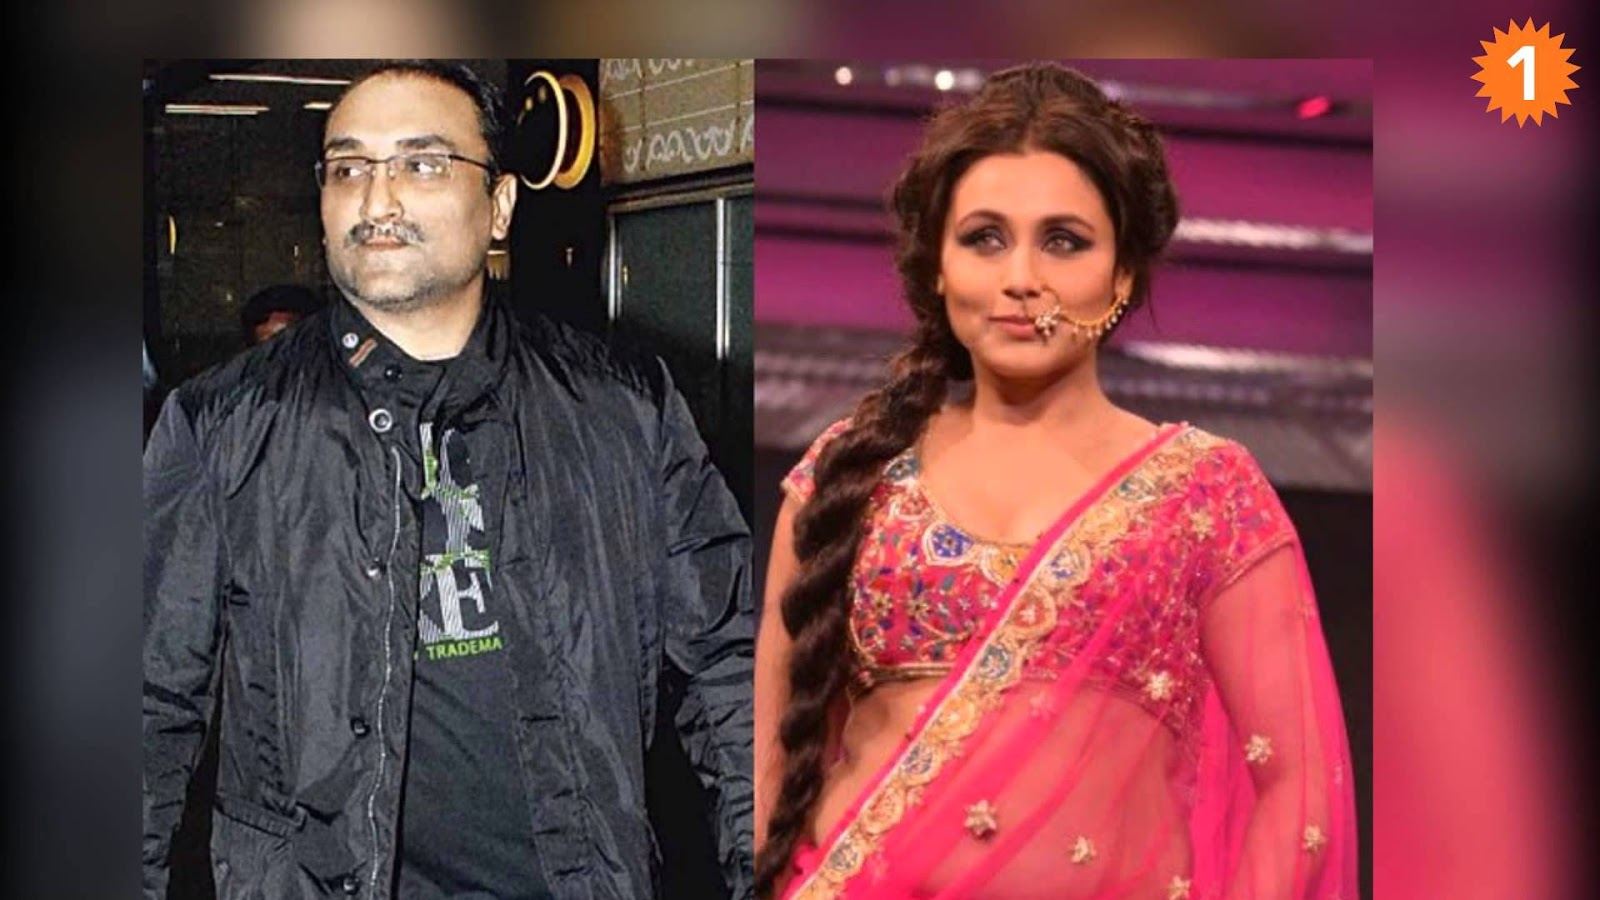 9. Rani Mukerji and Aditya Chopra